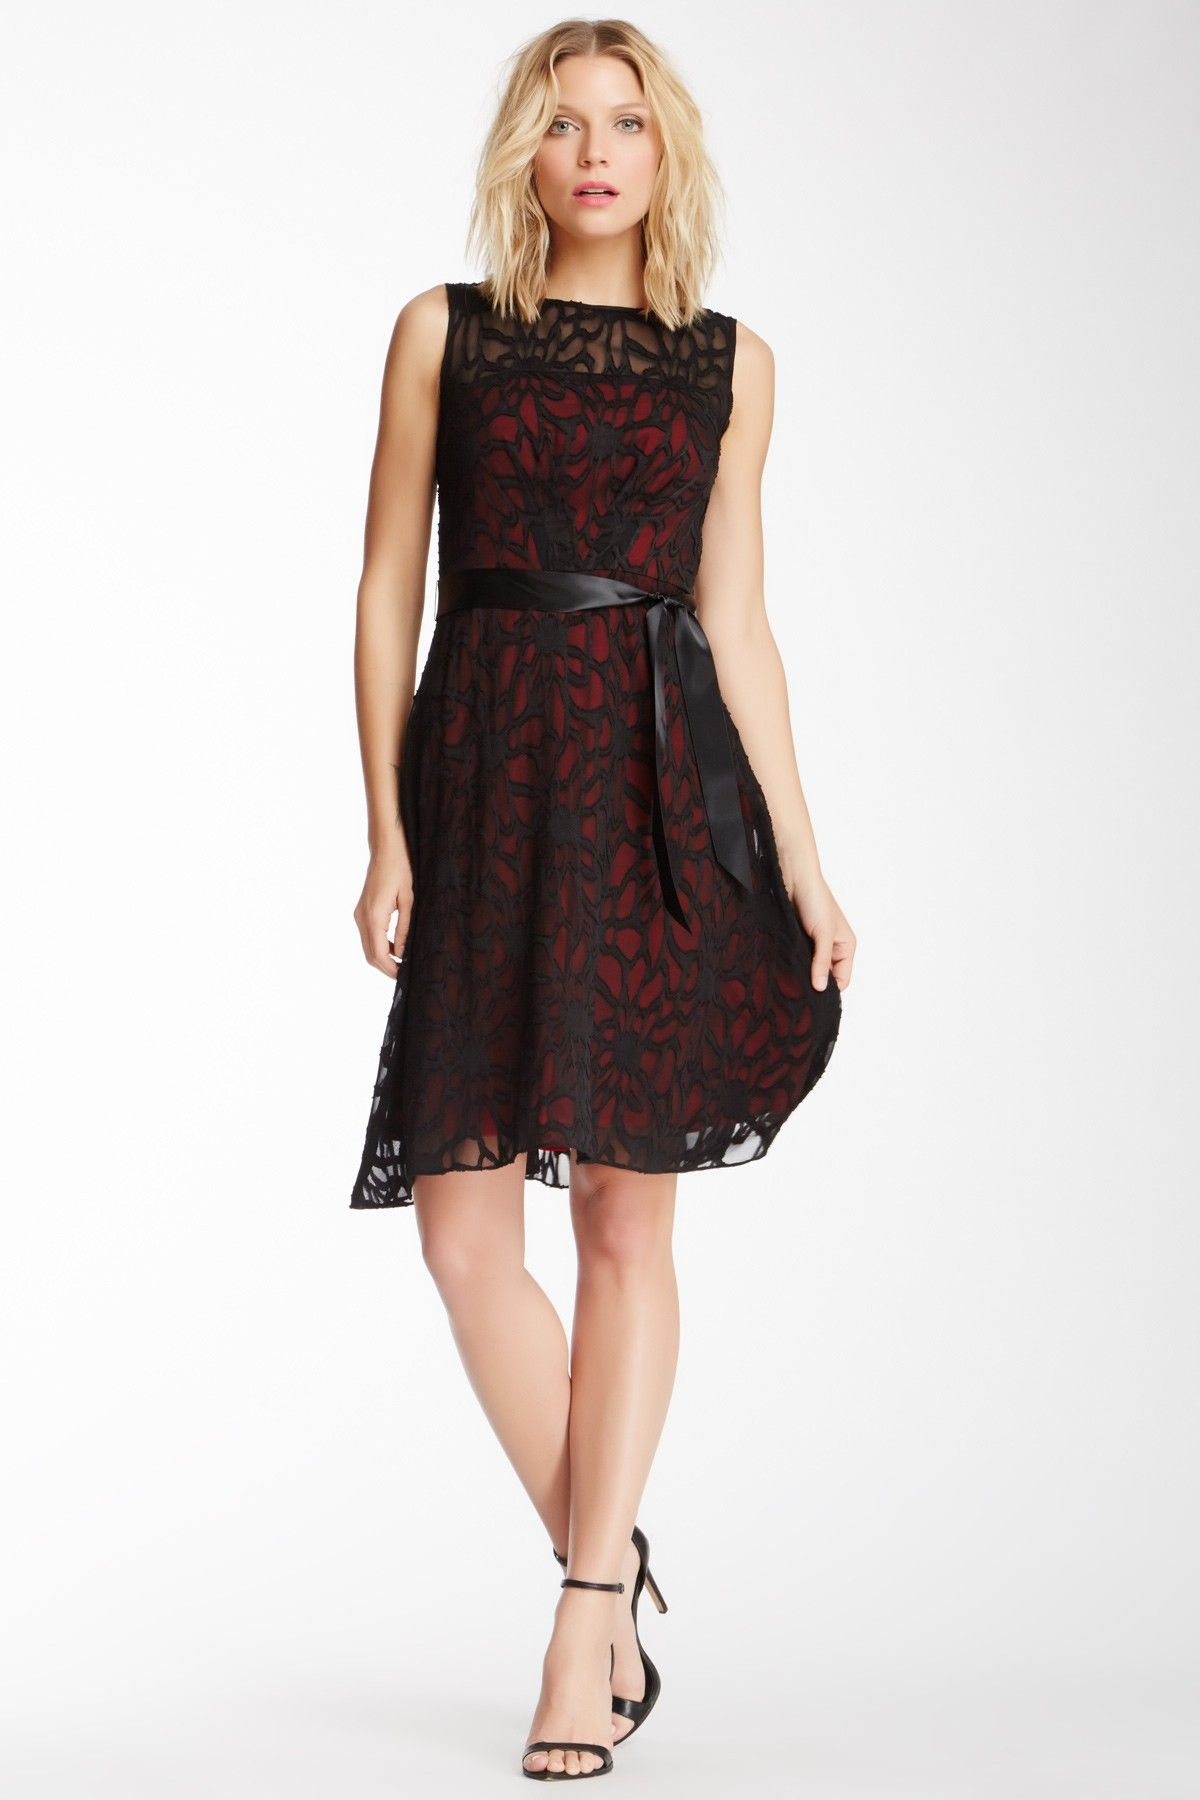 Love the red peeping through the black lace Style Me